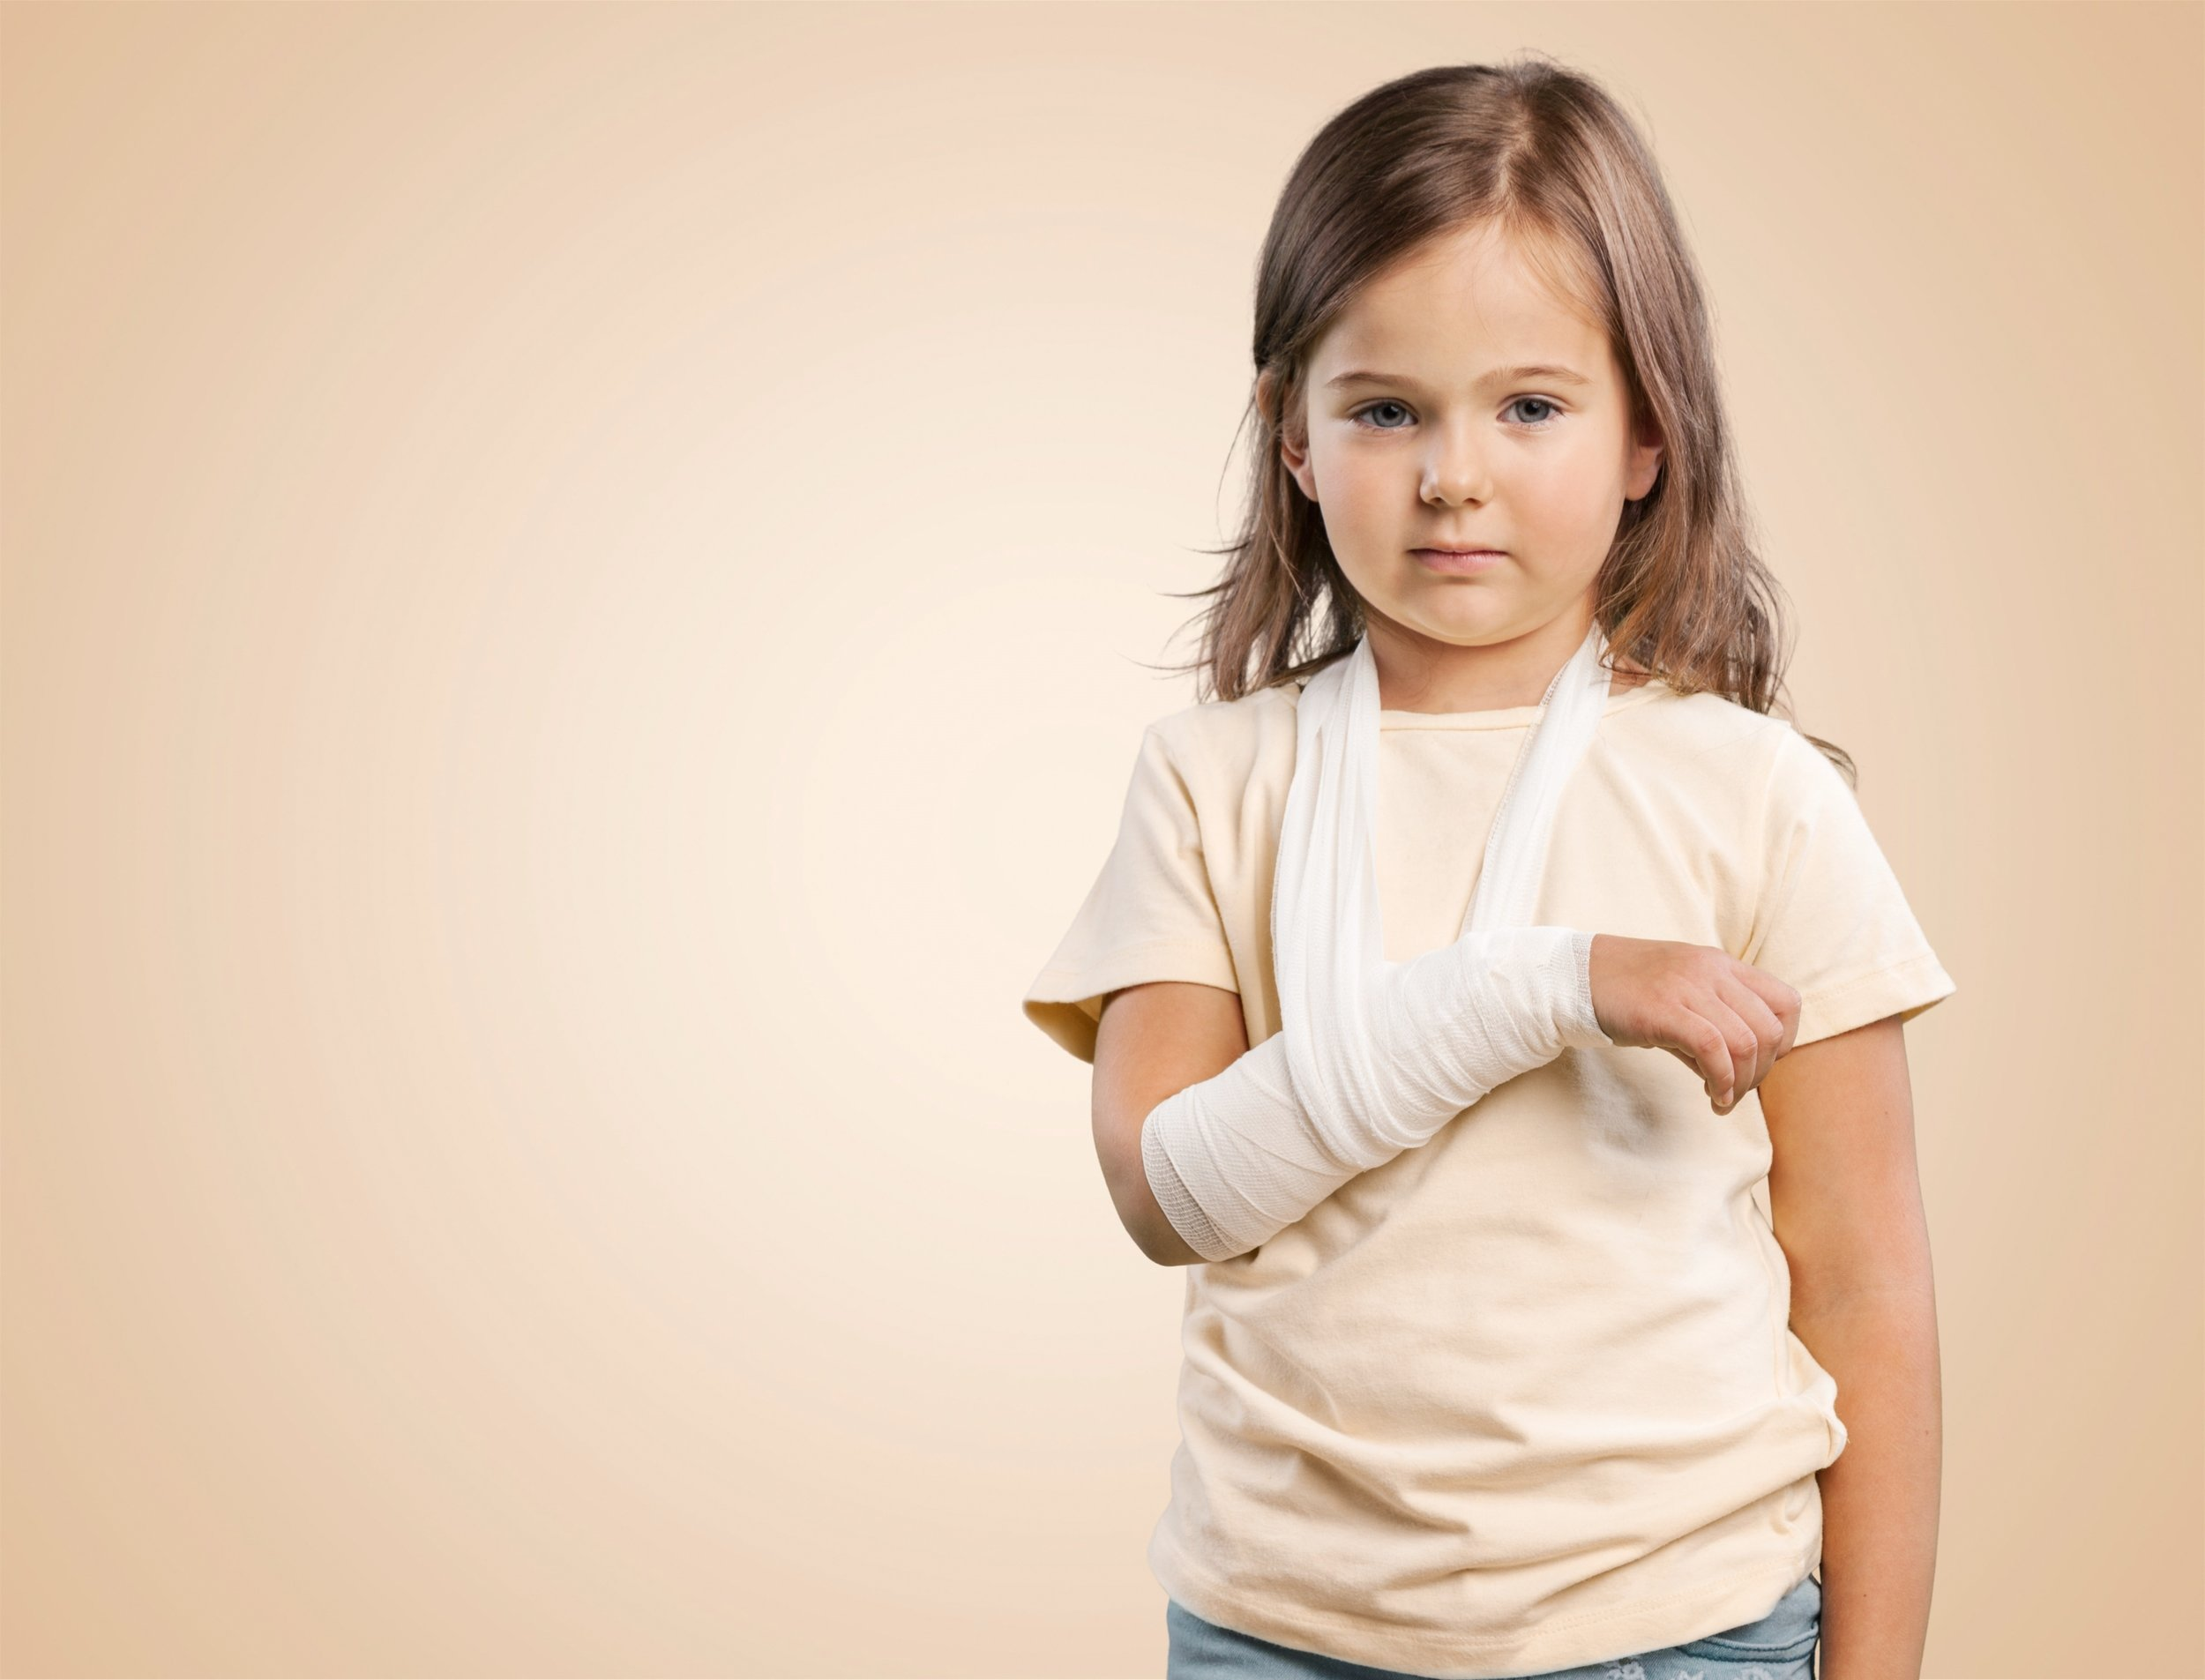 Young girl with broken arm in bandage.